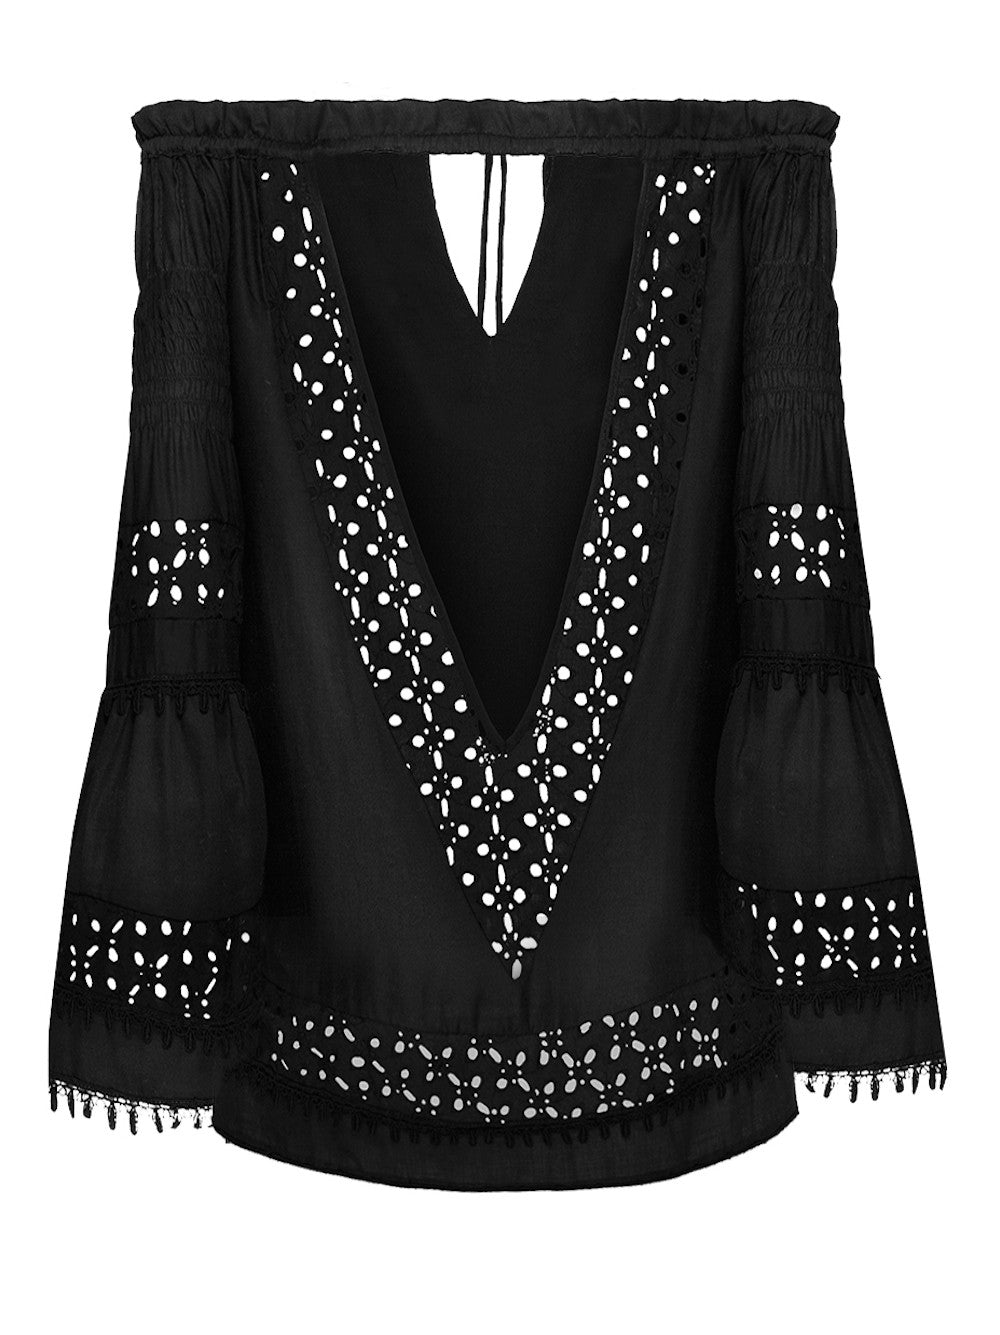 FEEL THE HEAT BLOUSE